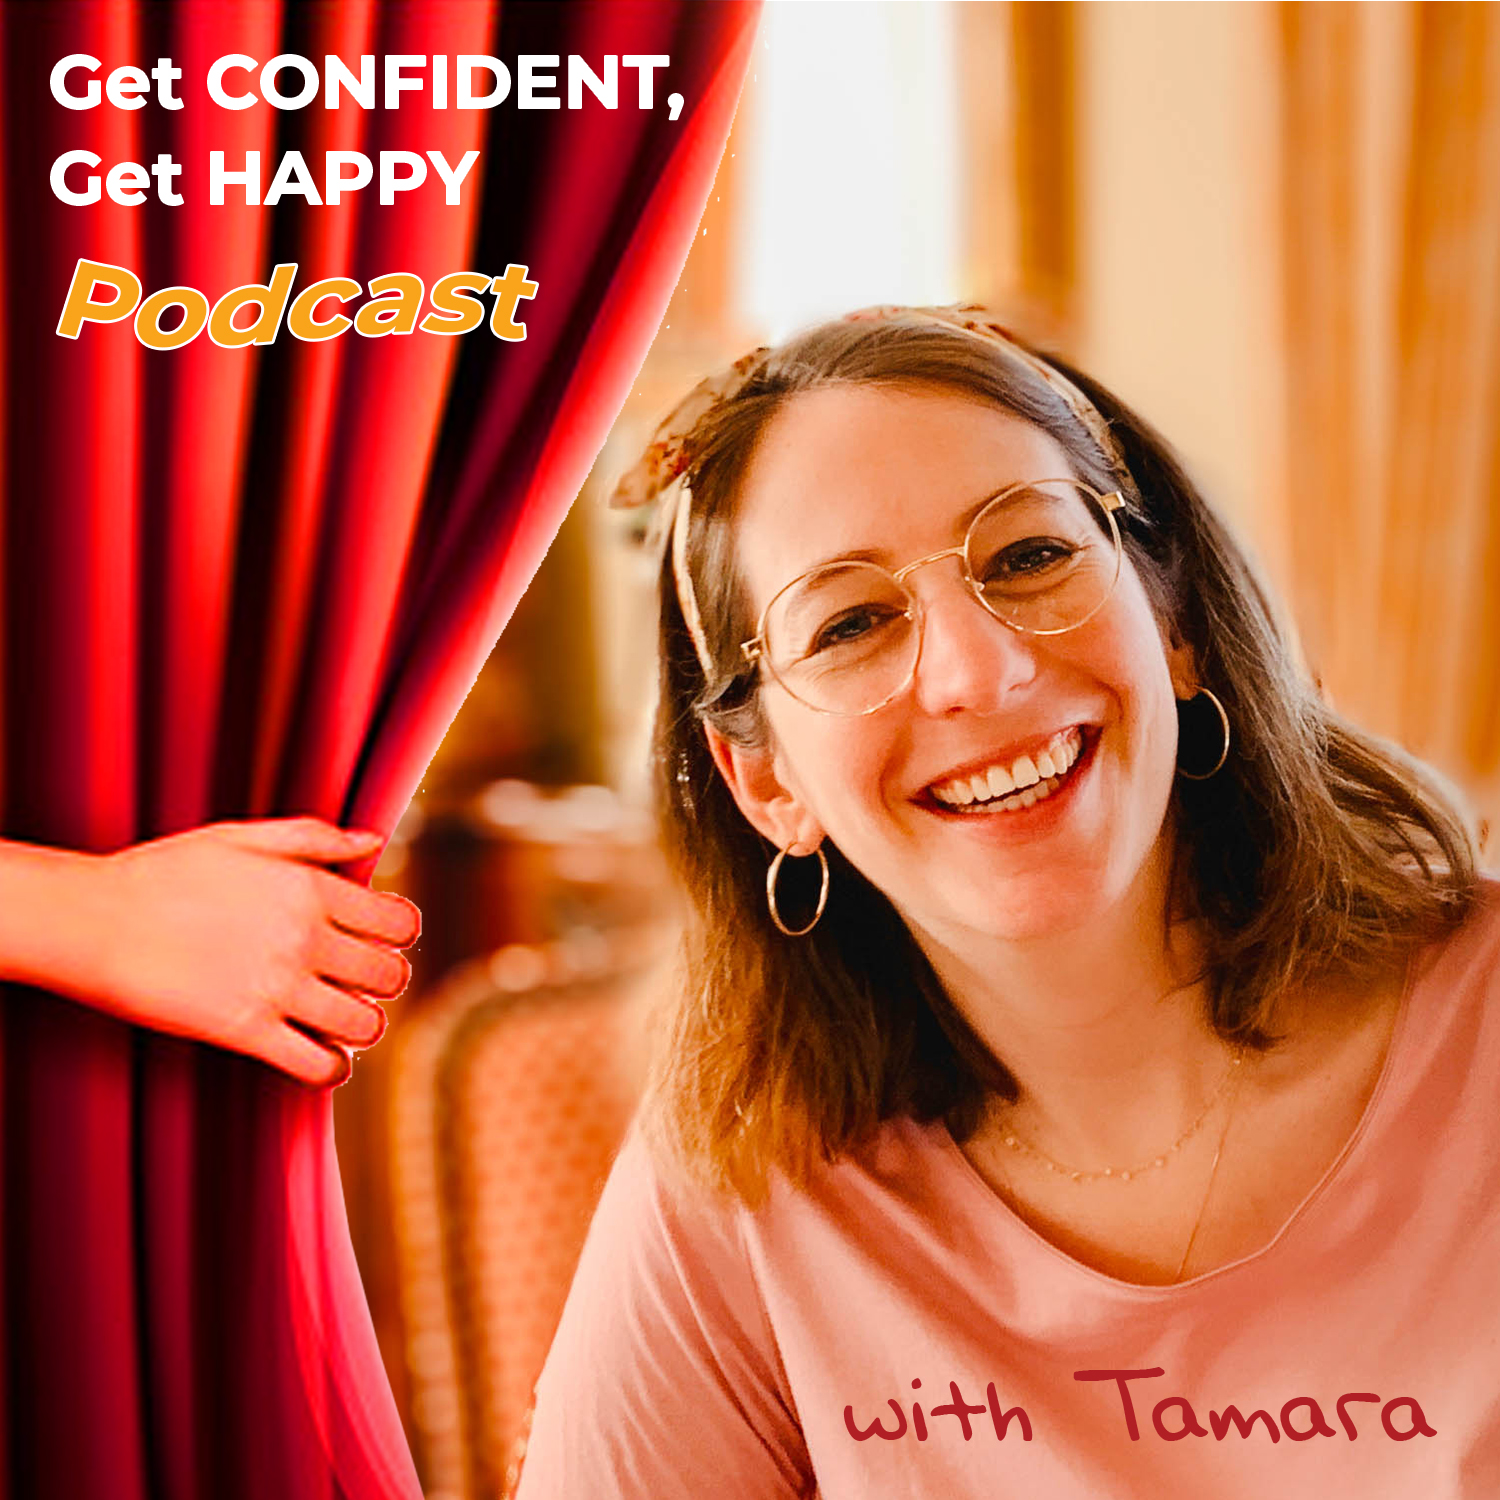 Get Confident, Get Happy Podcast show art